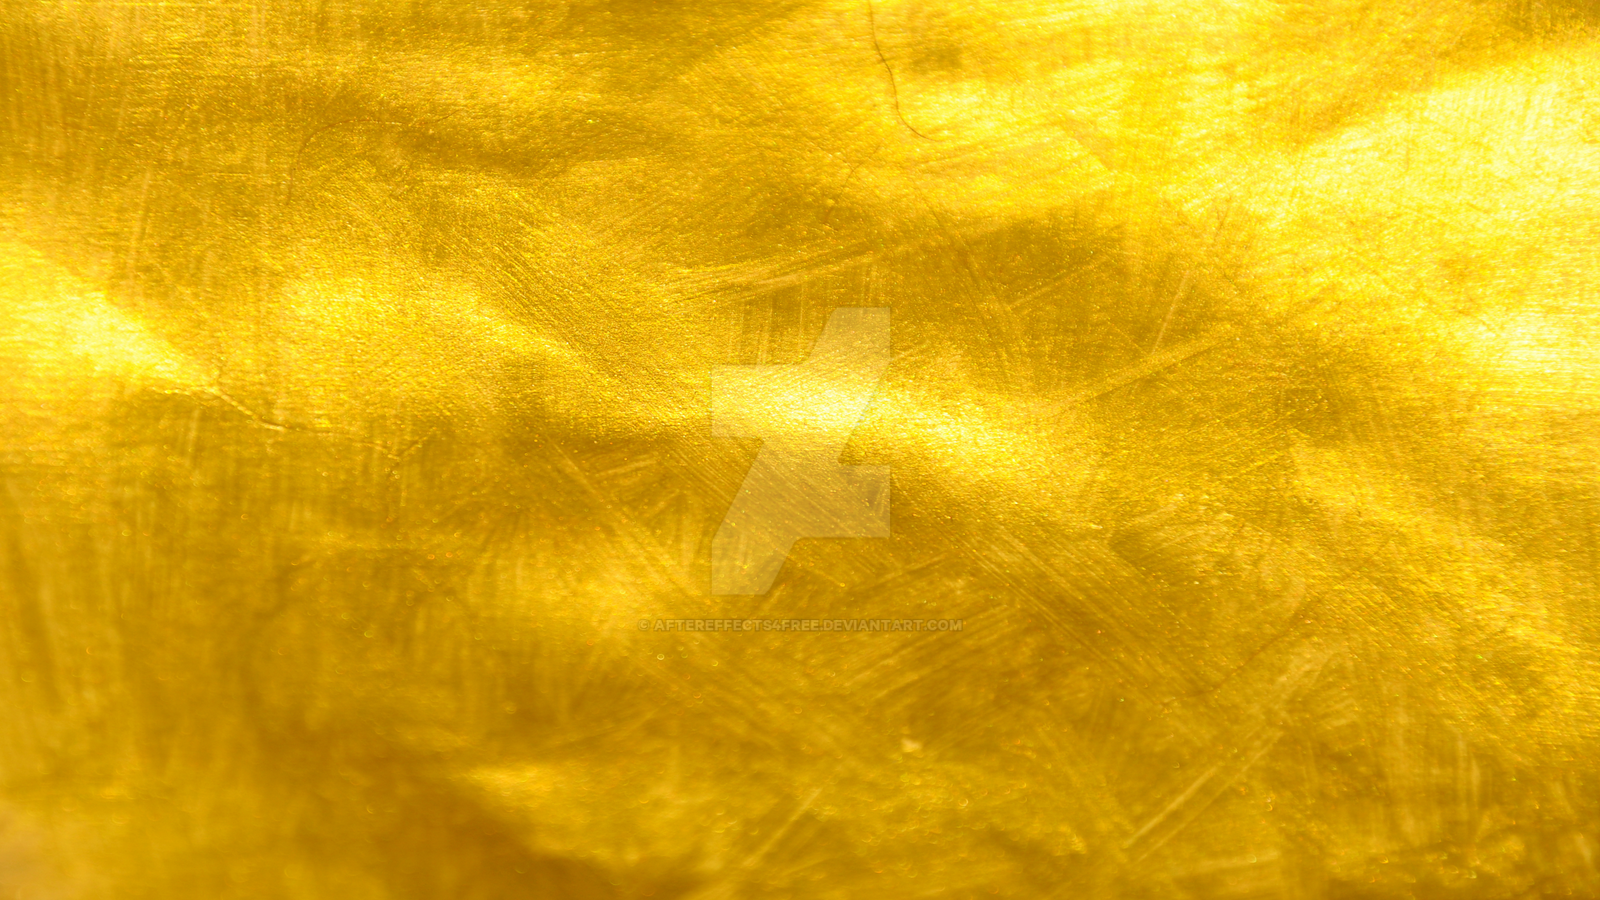 Hd wallpaper photo - Gold Texture 02 00000 By Aftereffects4free On Deviantart